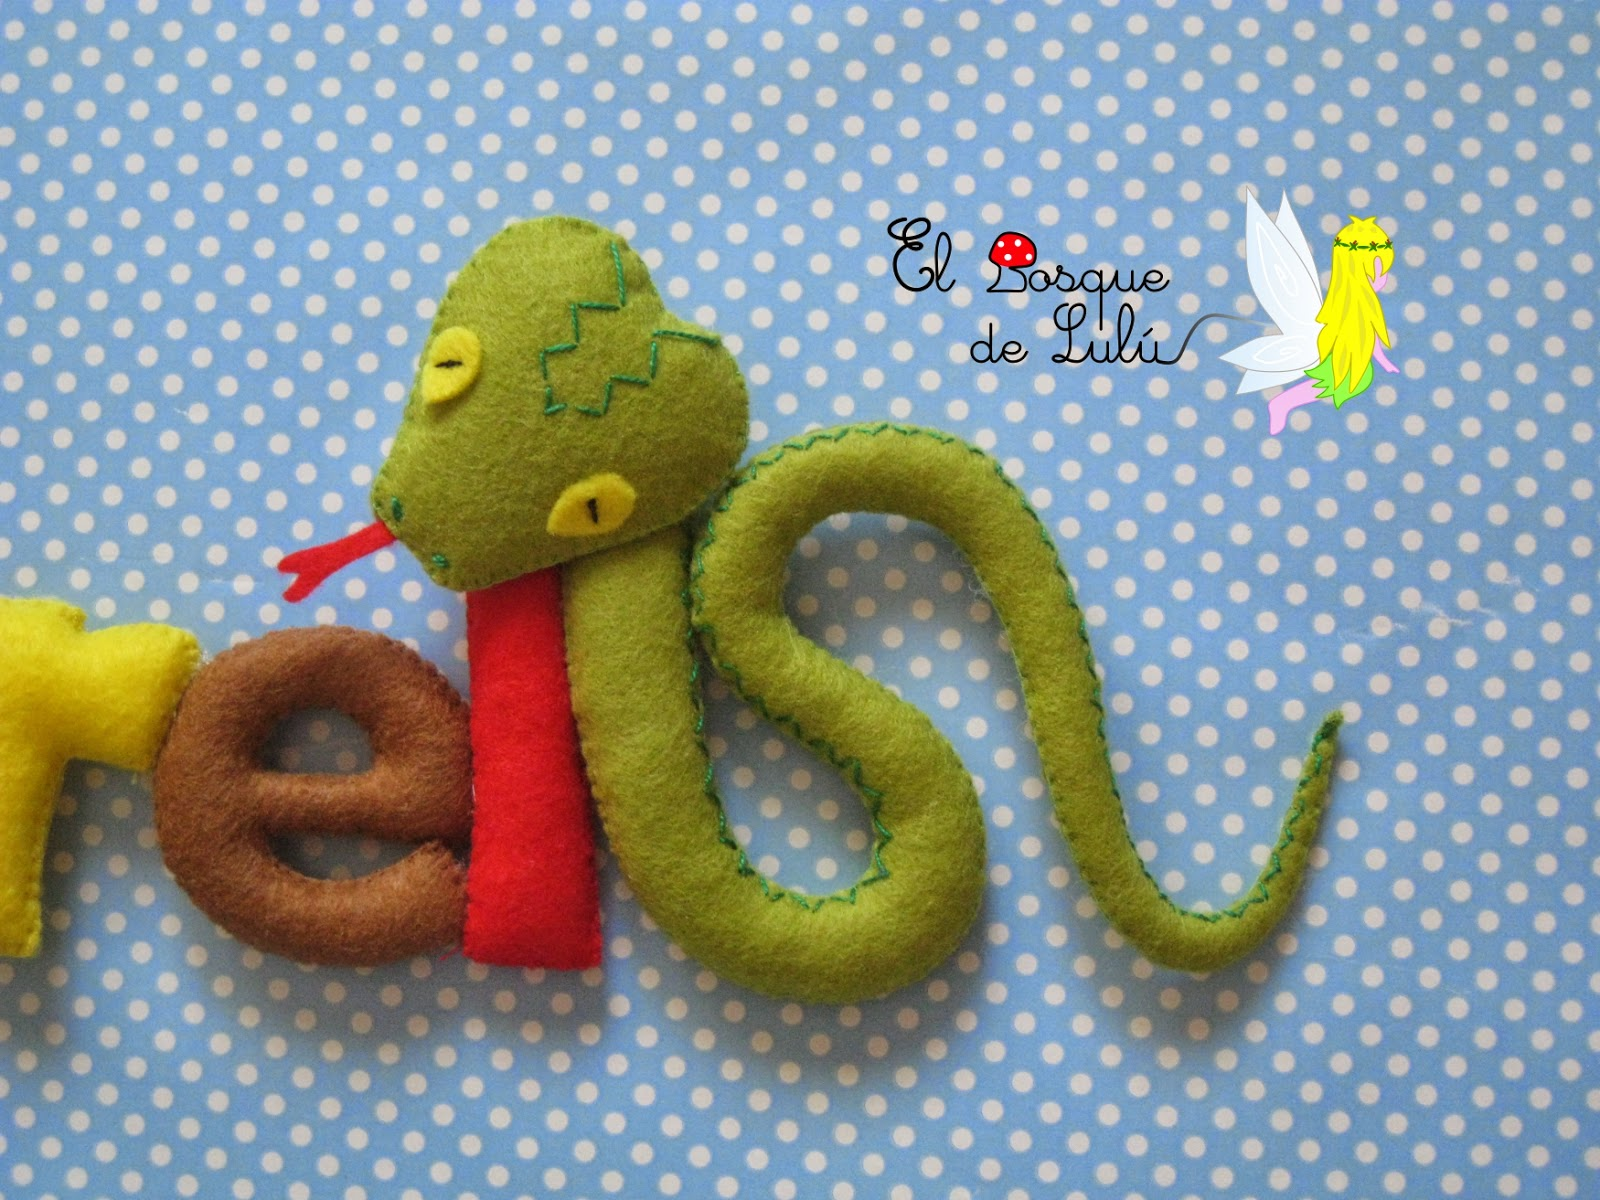 serpiente-fieltro-decoración-infantil-name-banner-regalo